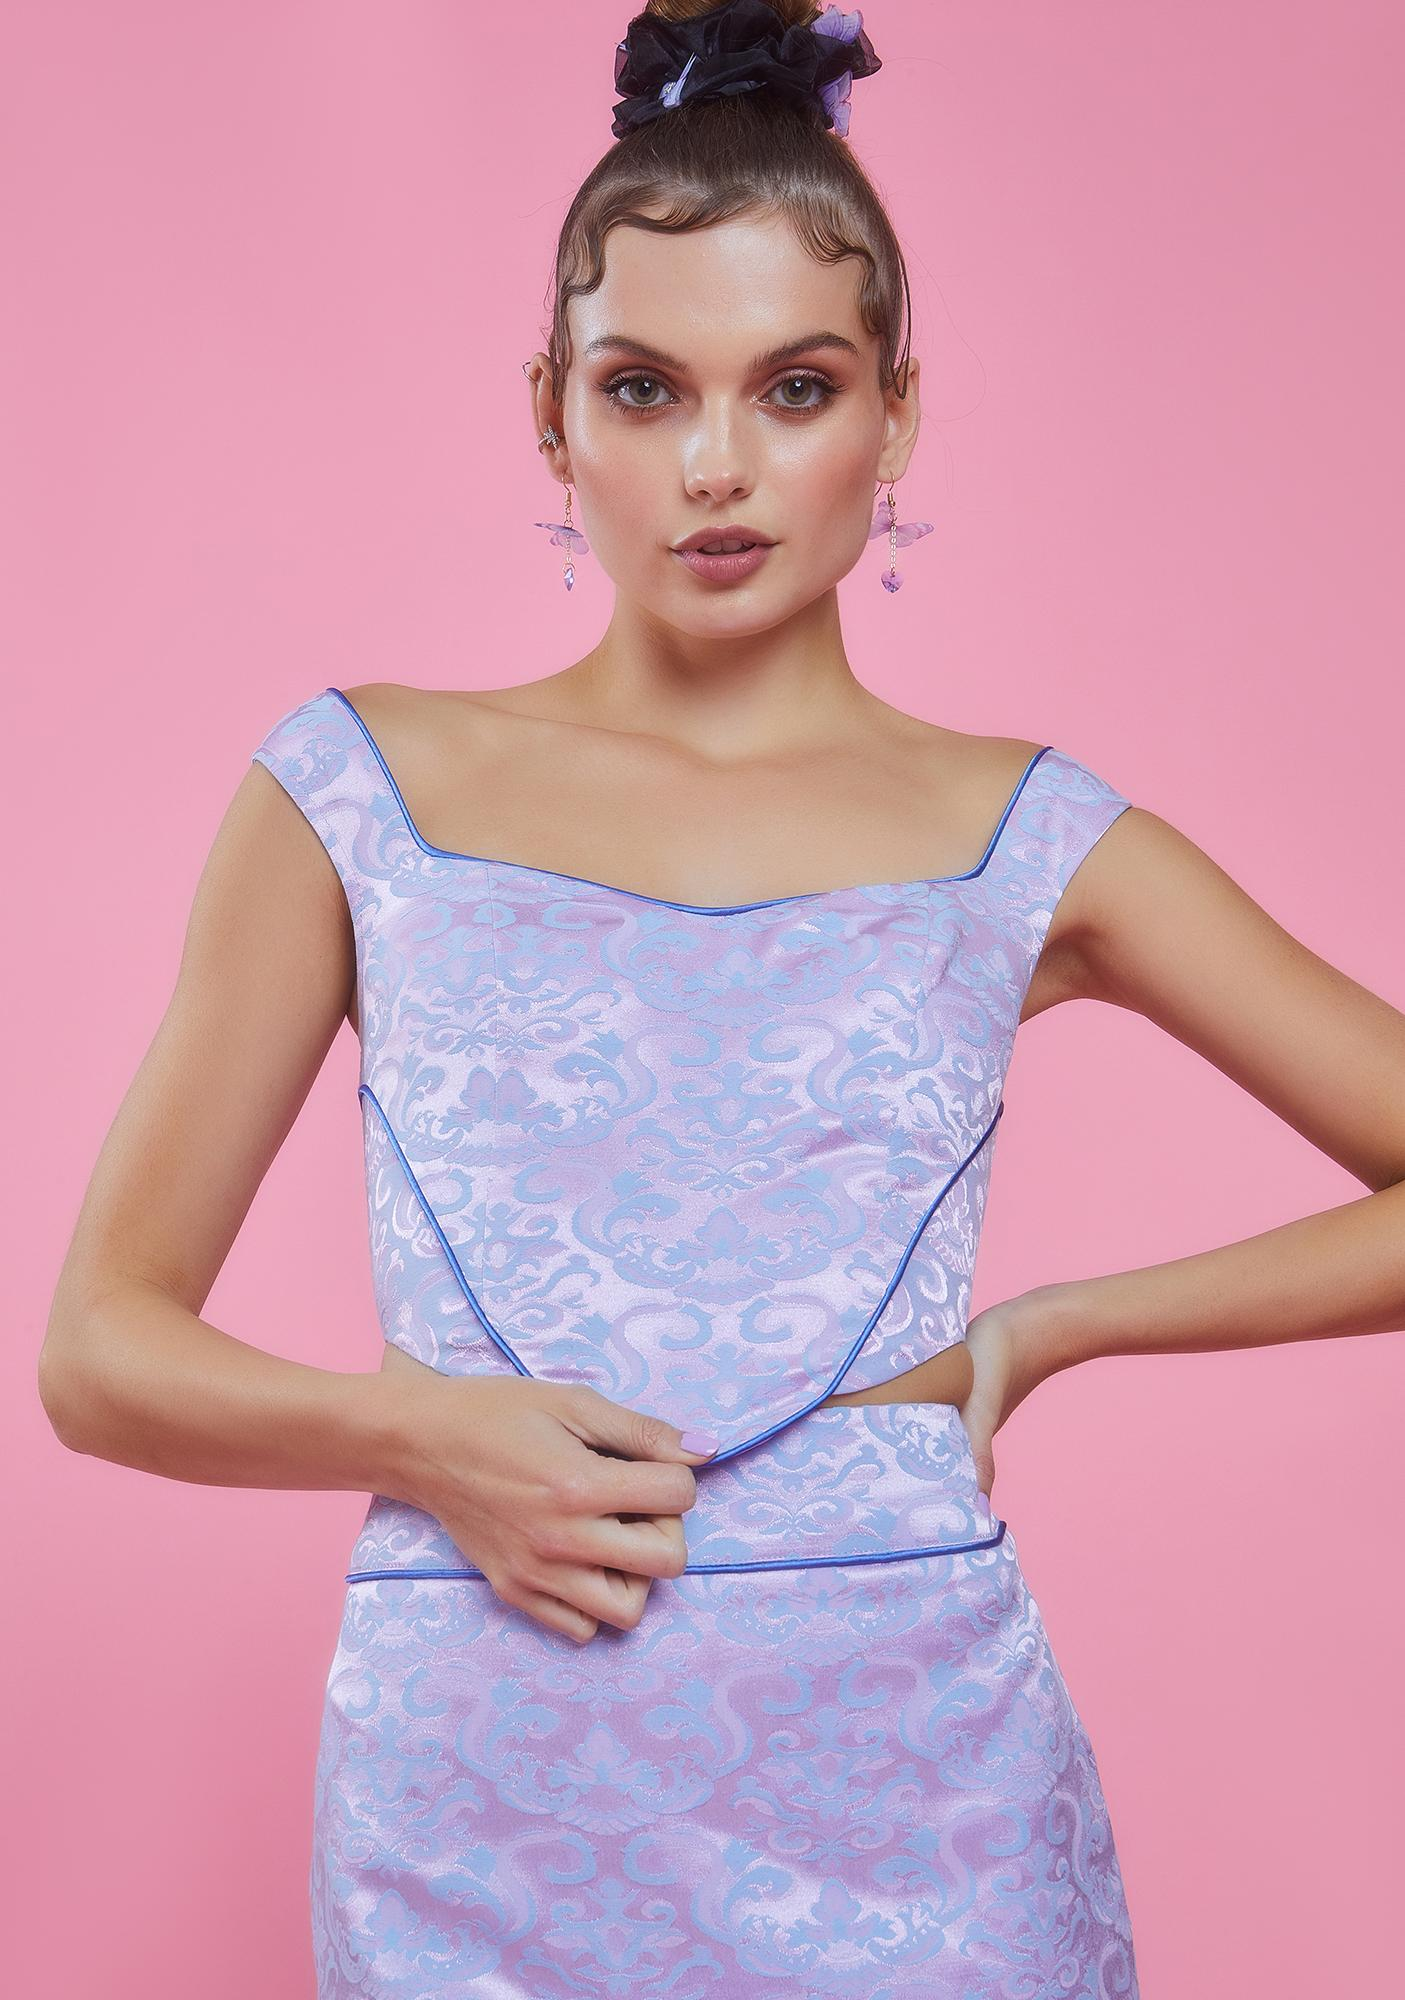 Sugar Thrillz Stole The Show Jacquard Bustier Top